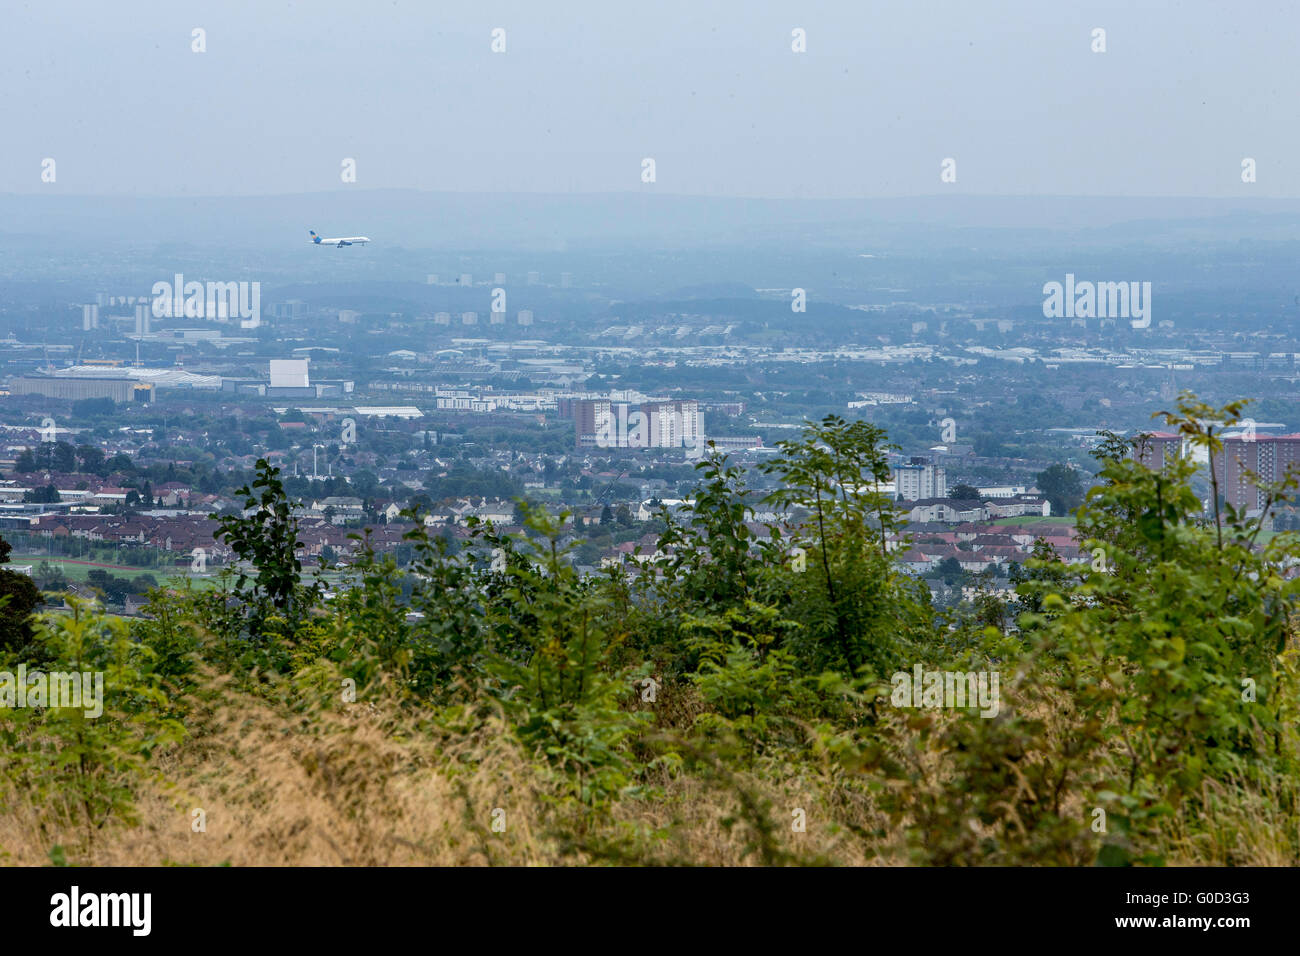 Aircraft coming into land at Glasgow Airport with view of Glasgow in background - Stock Image